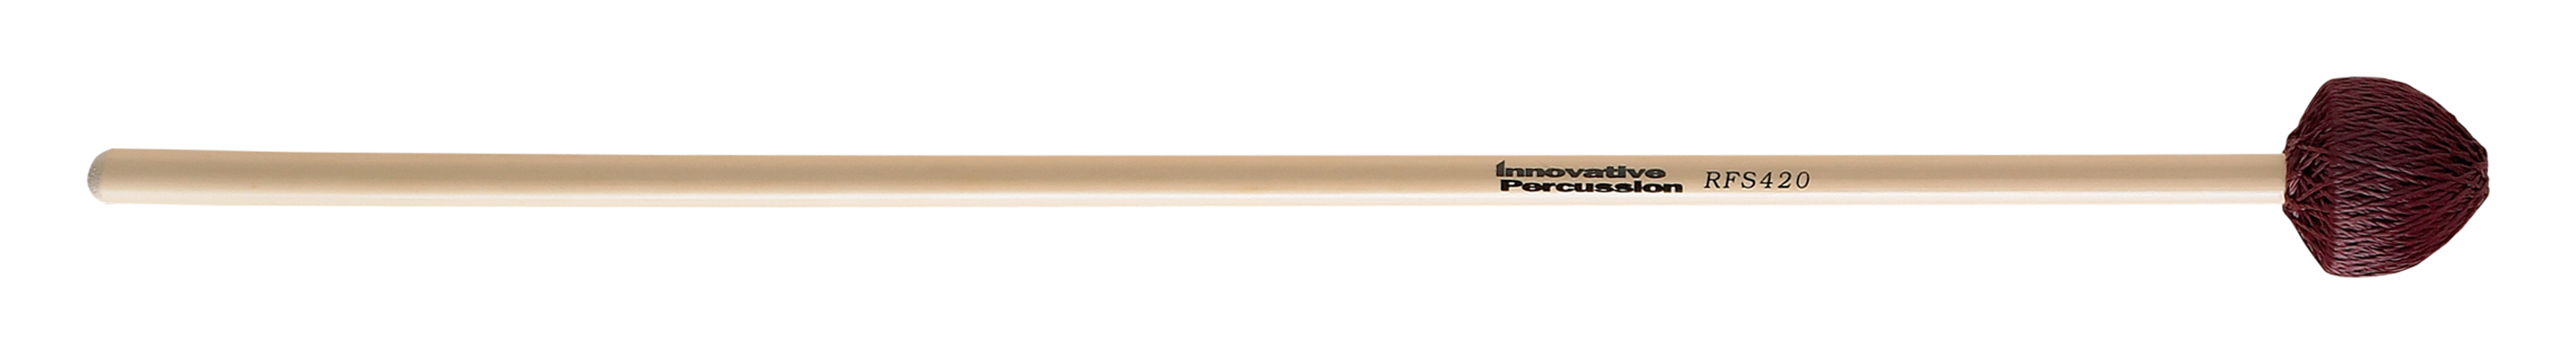 Innovative Percussion RFS420 Field Series Hard Vibraphone Mallets w  Rattan Handles by Innovative Percussion